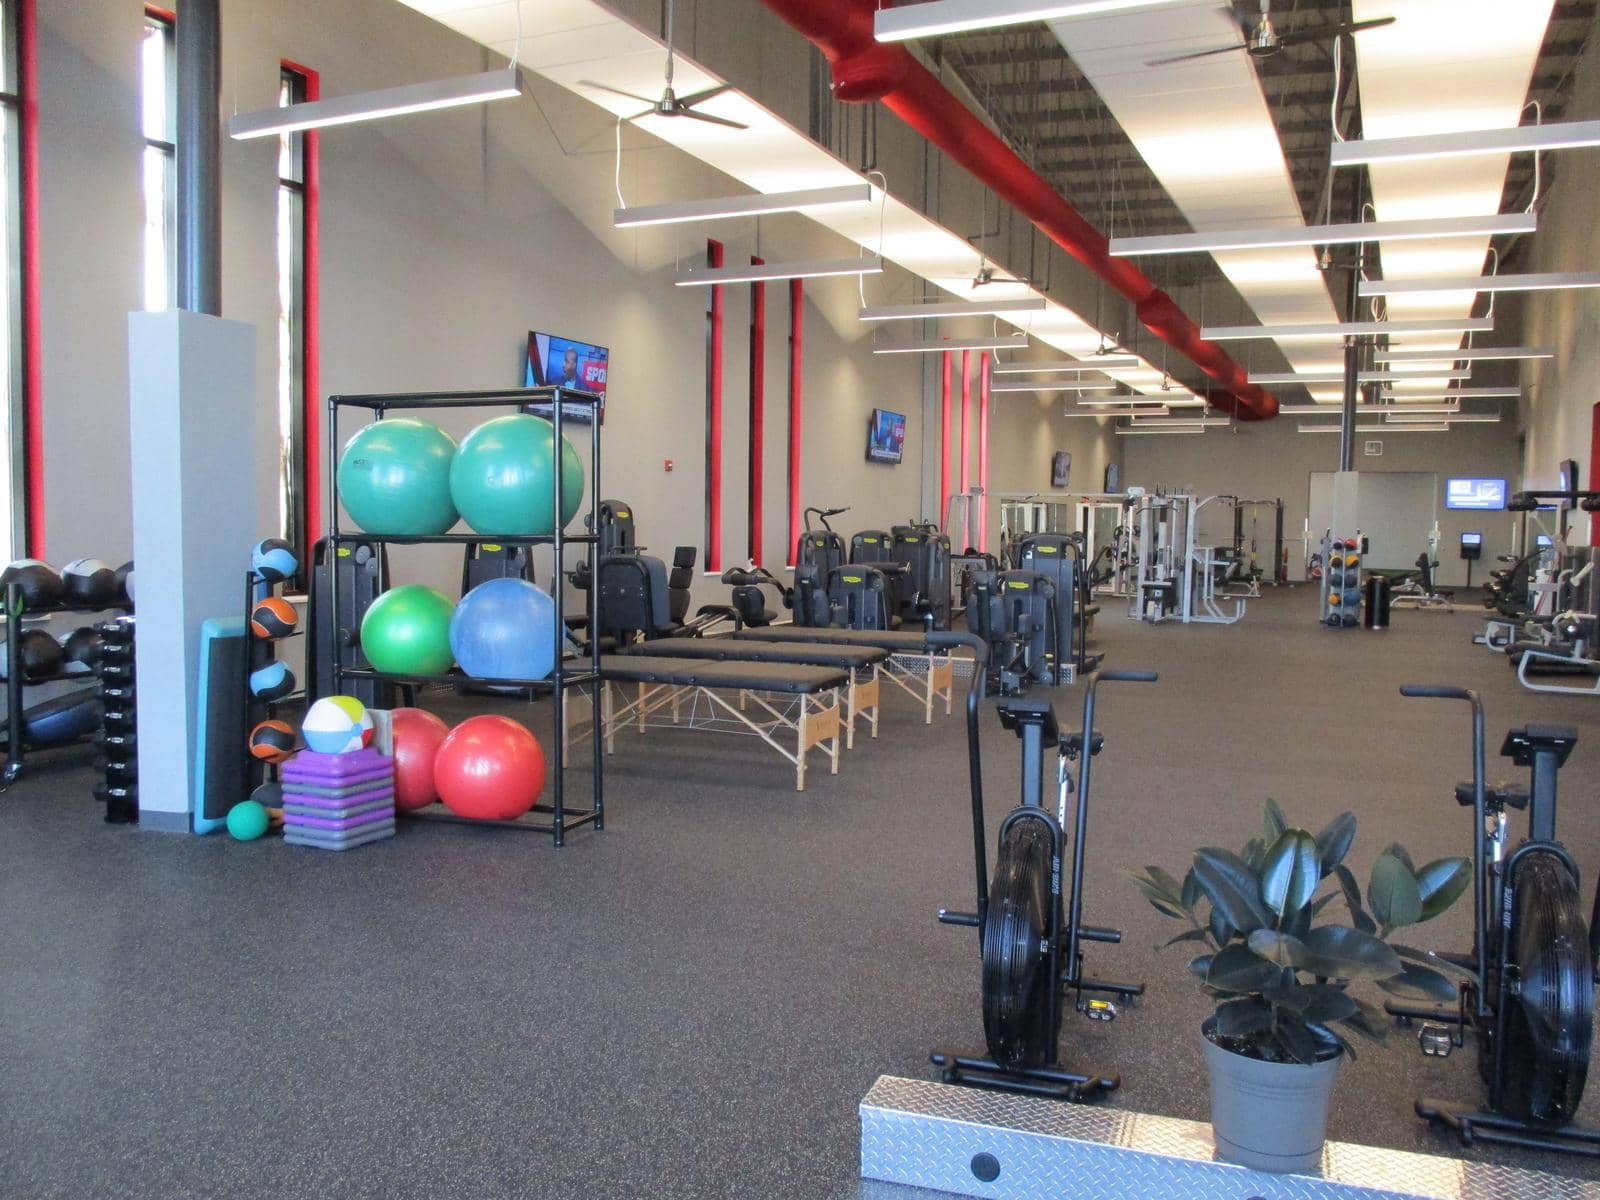 Health Club Flooring The Miller Center Lewisburg Pa All Sports